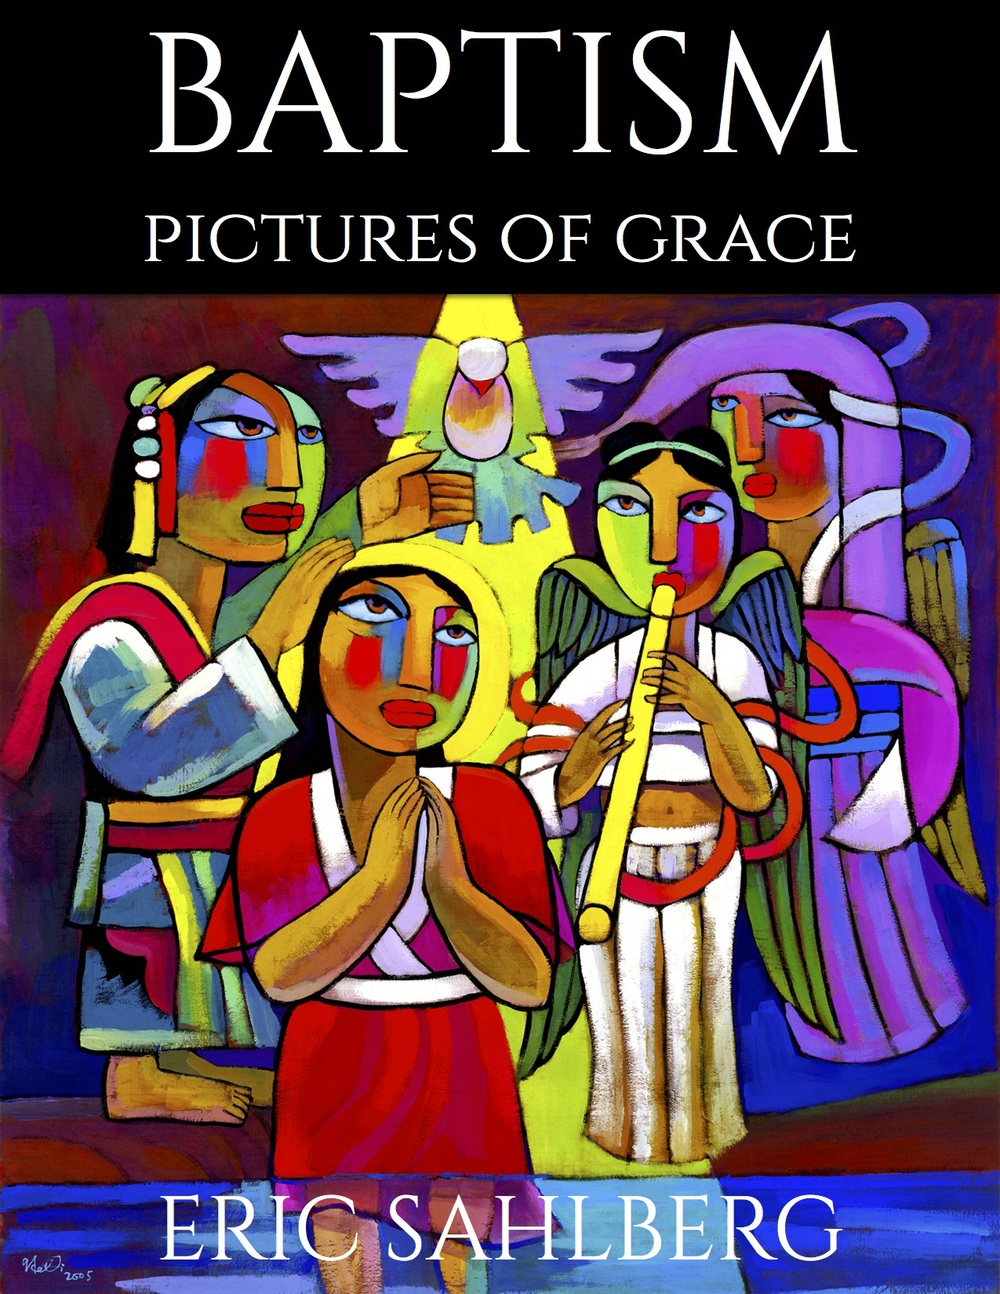 Baptism Pictures of Grace is available at Amazon (Kindle and Paperback), Barnes & Noble and Apple iTunes